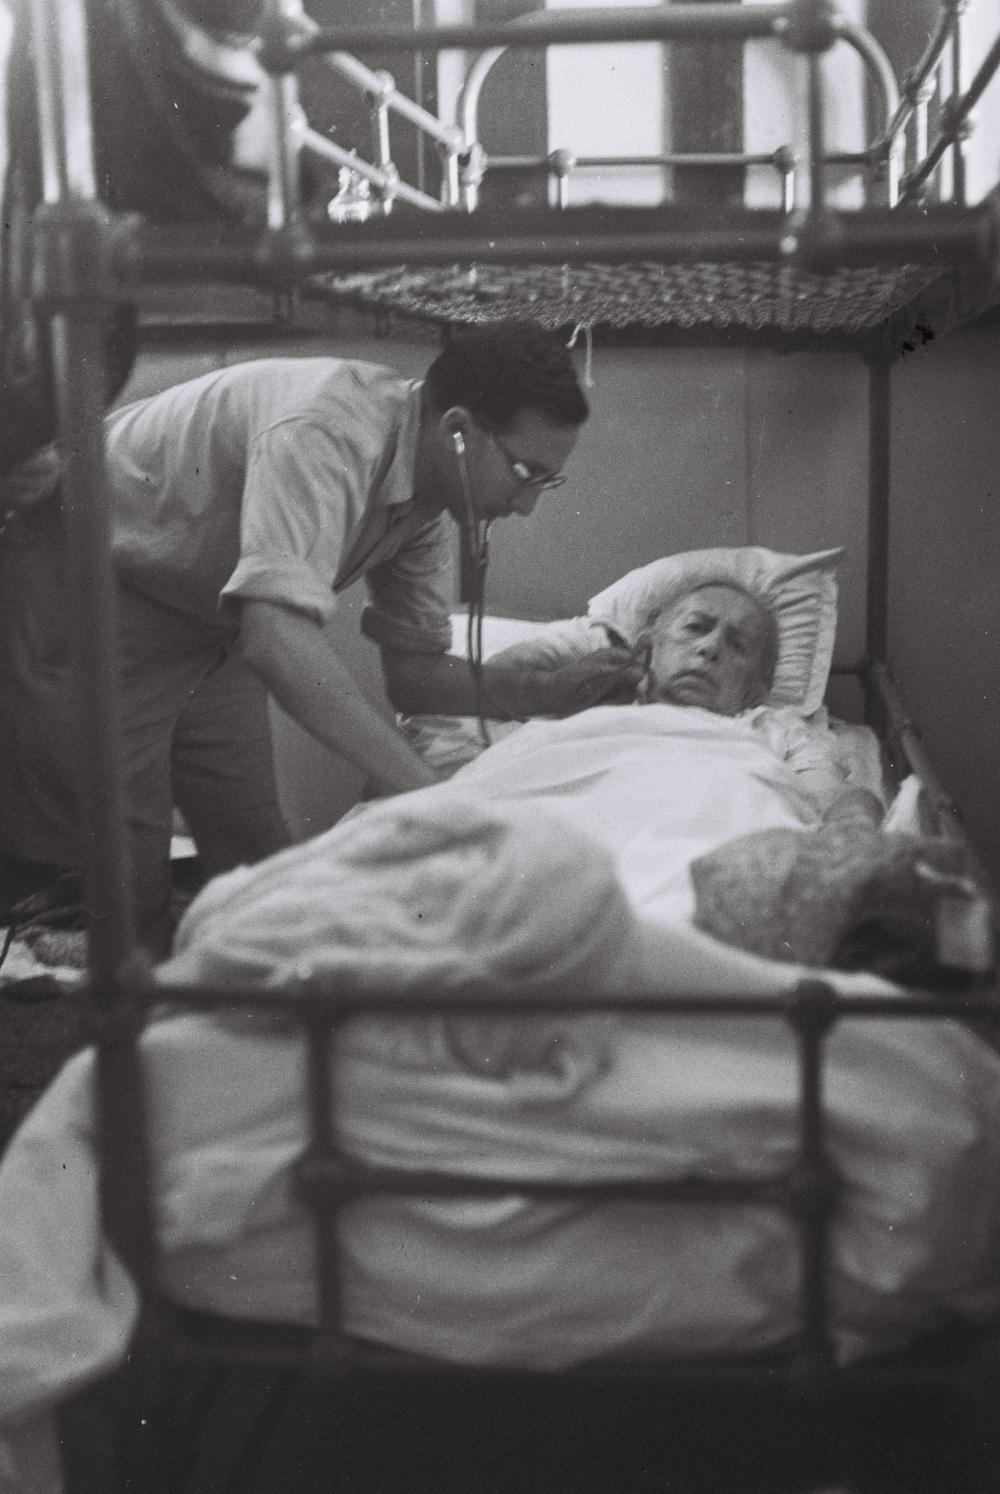 A doctor examining a sick immigrant